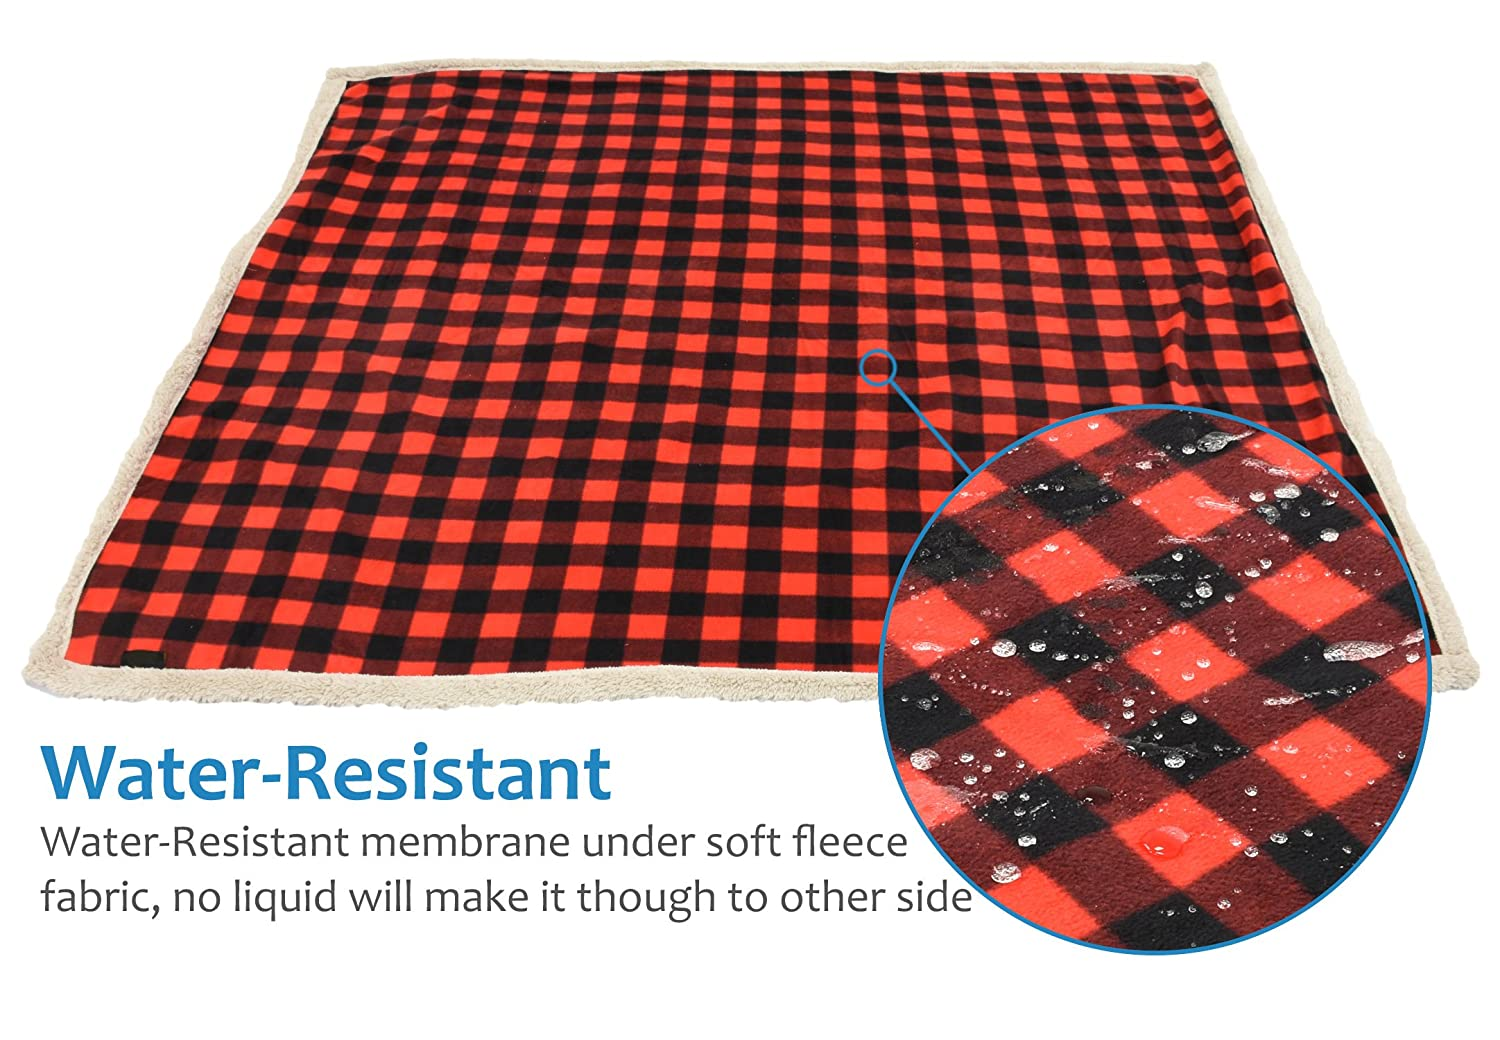 Pawsse Waterproof Dog Blanket,Pee Proof Pet Blankets Cover for Couch Bed Sofa,Reversible Furniture Protector Sherpa Cushion Mat for Small Medium Large Dogs Puppy Cat